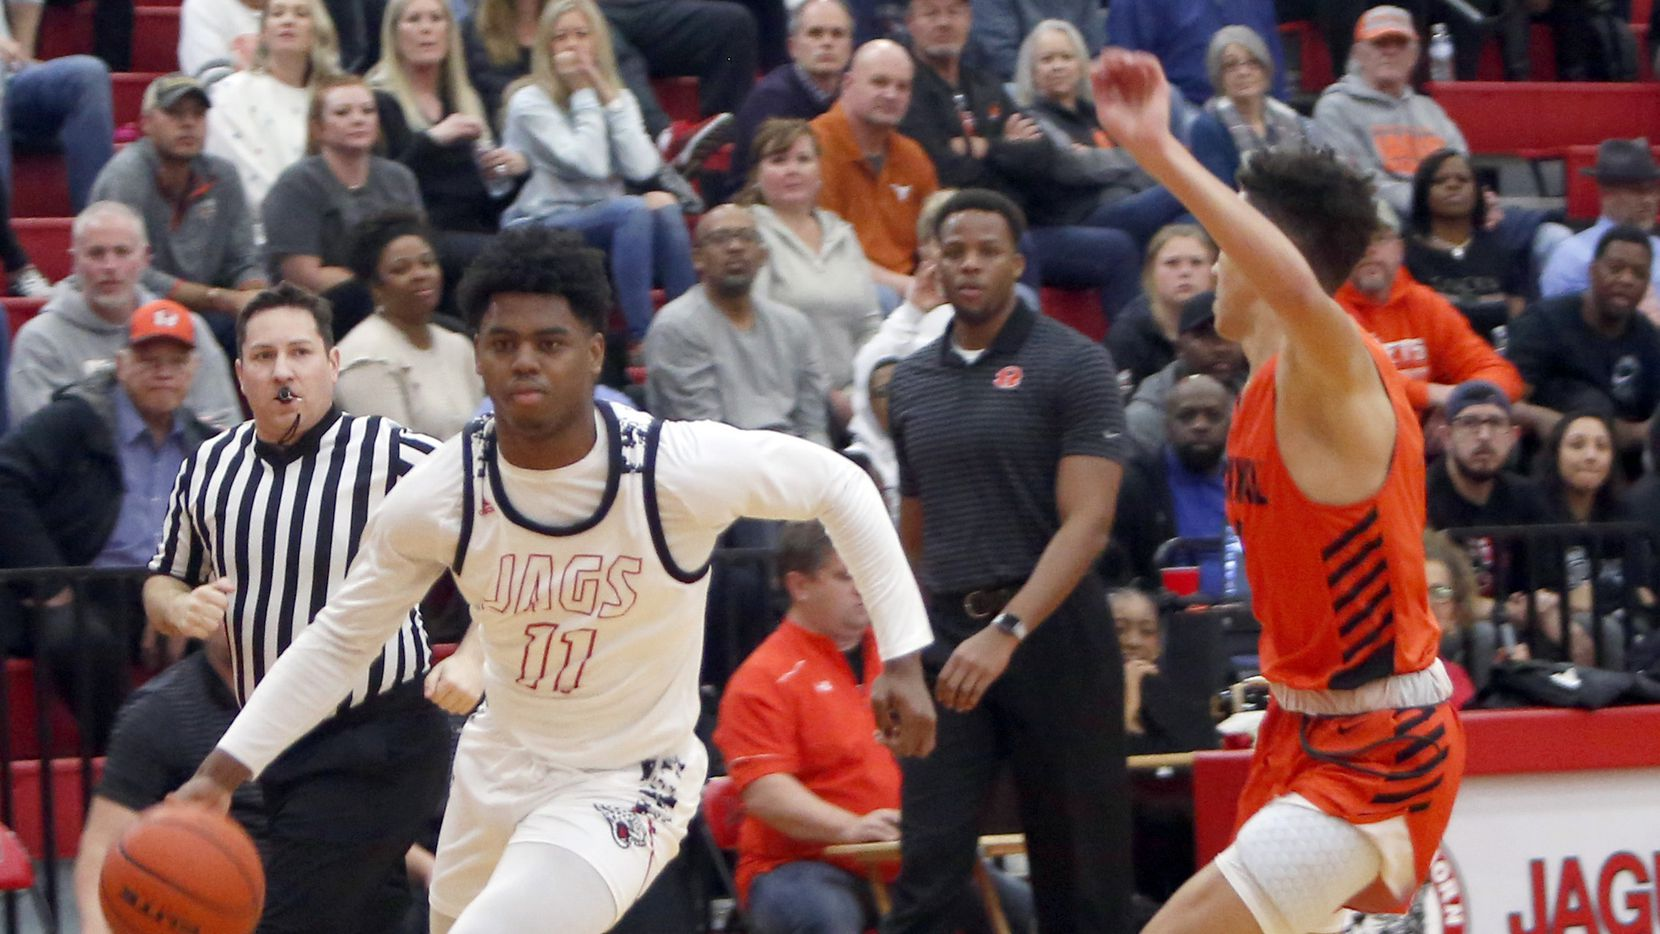 Mesquite Horn's Zaakir Saywer (left) drives to the basket as Rockwall's Logan Hutton defends. Horn won 55-43 to win the District 11-6A title.